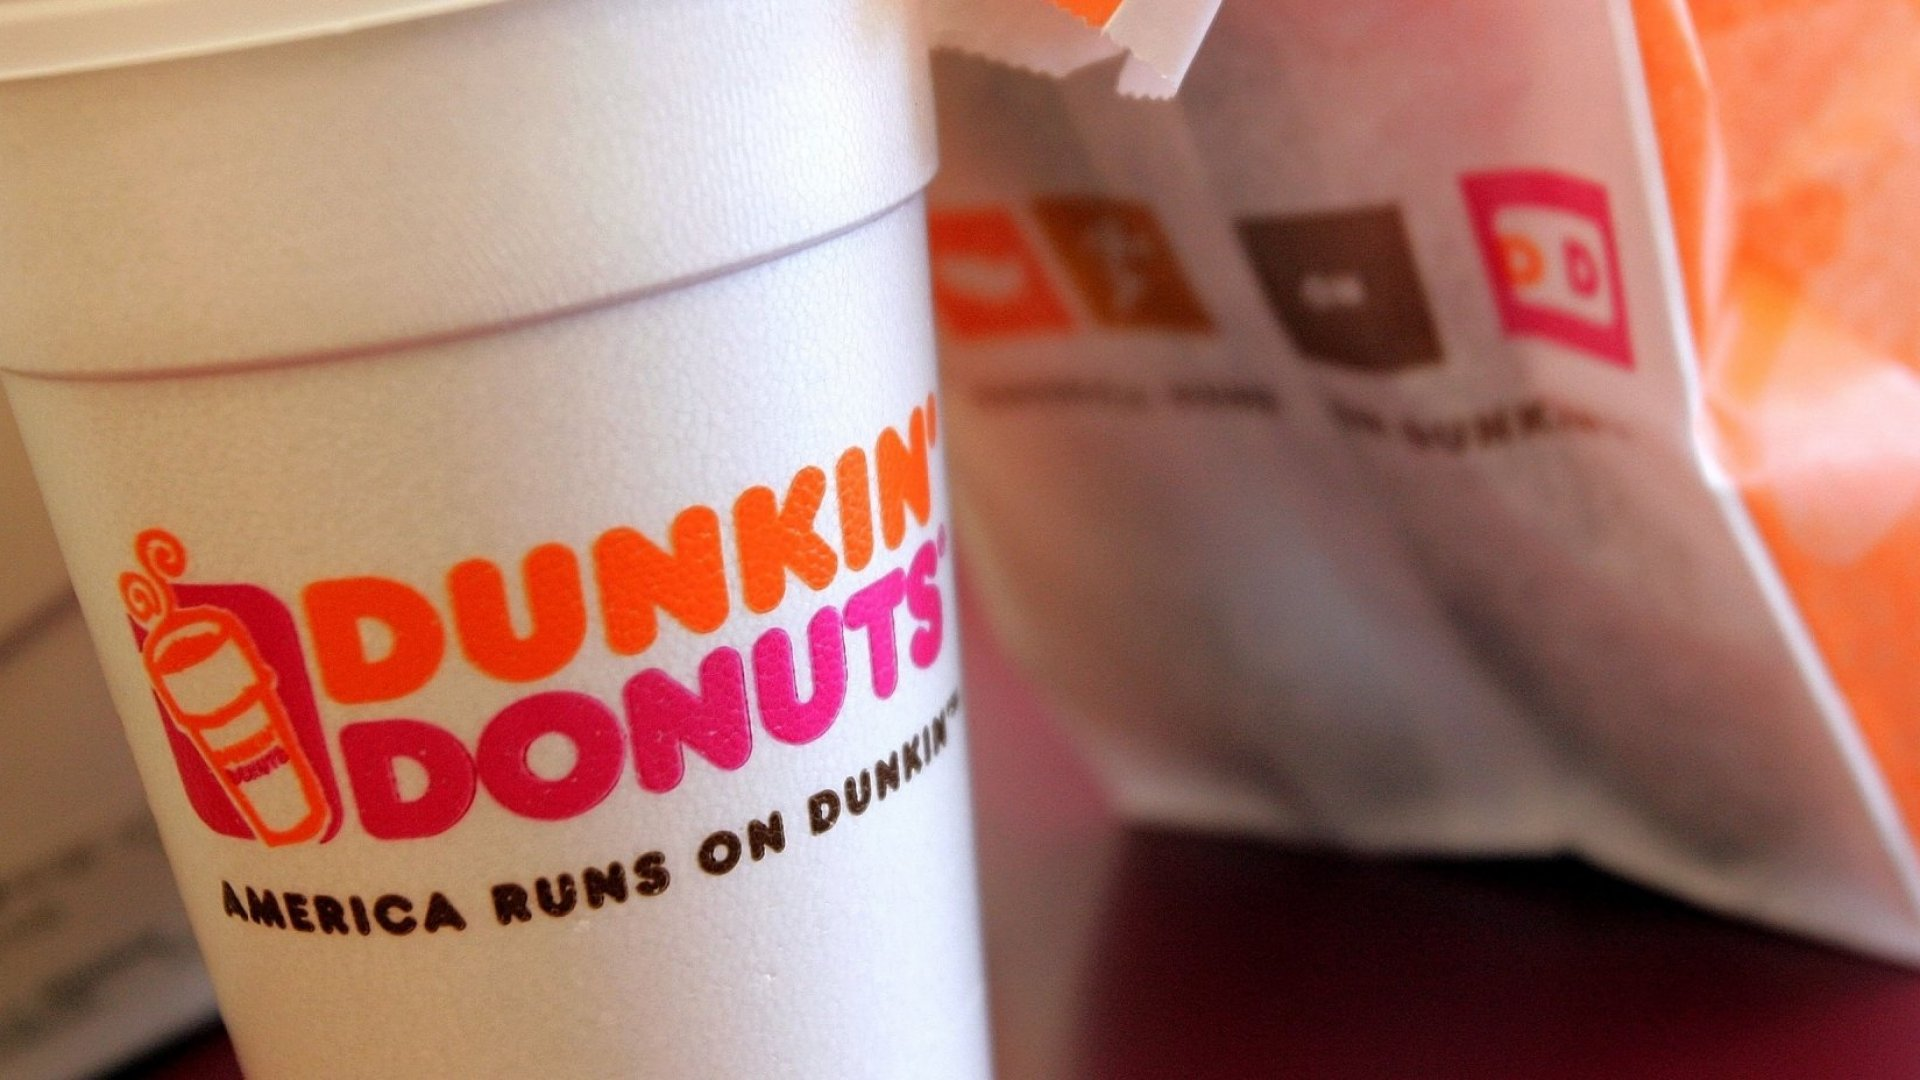 Dunkin' for trouble?